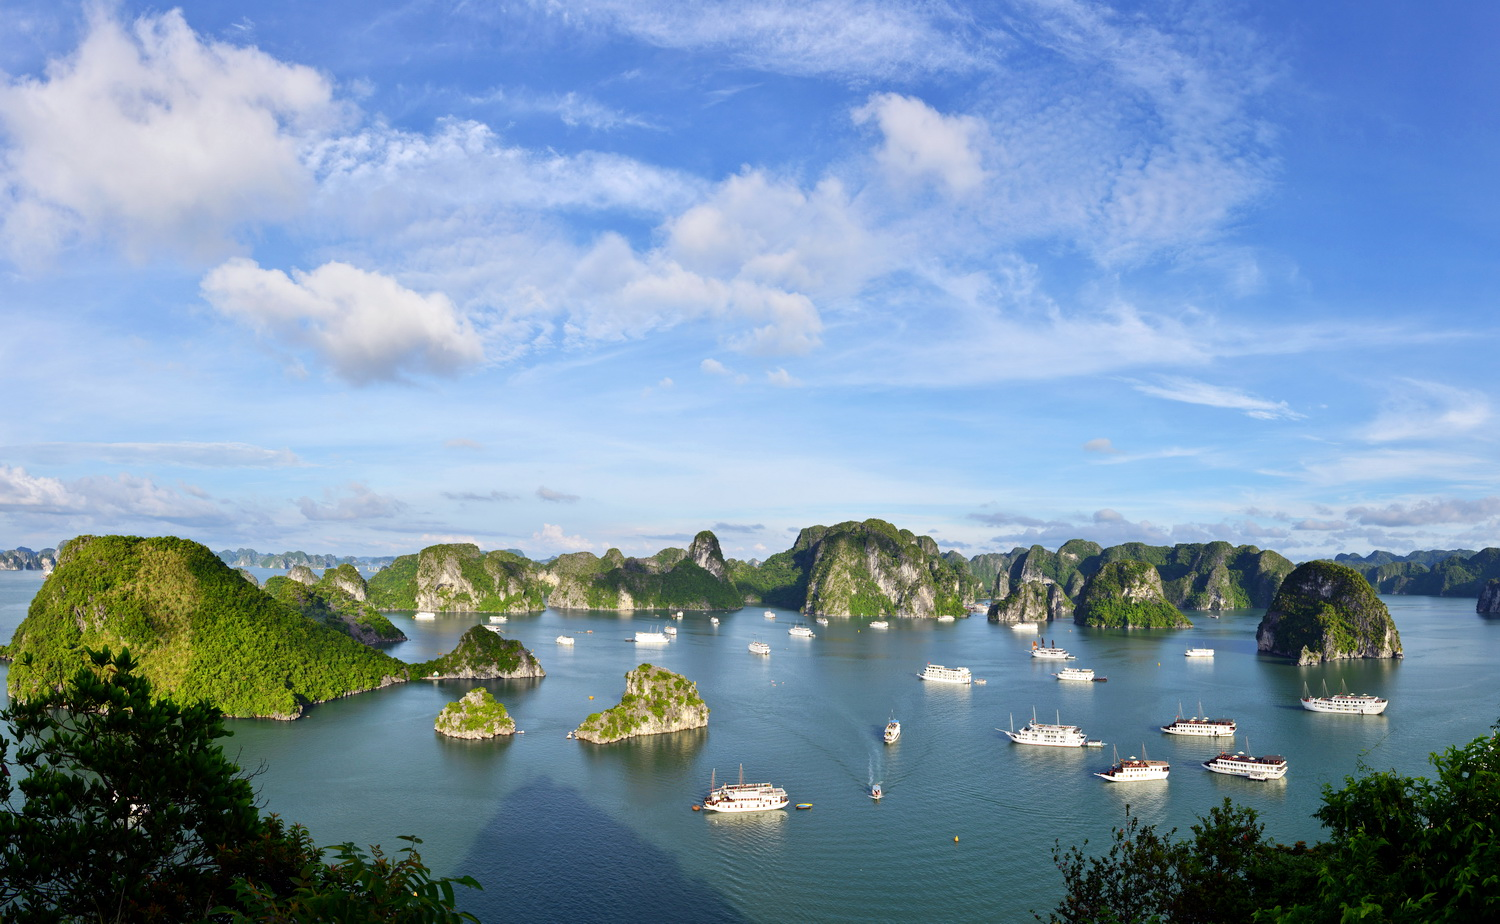 Viet Nam Adventure tour from the north to the south 12 Days - 11 Nights